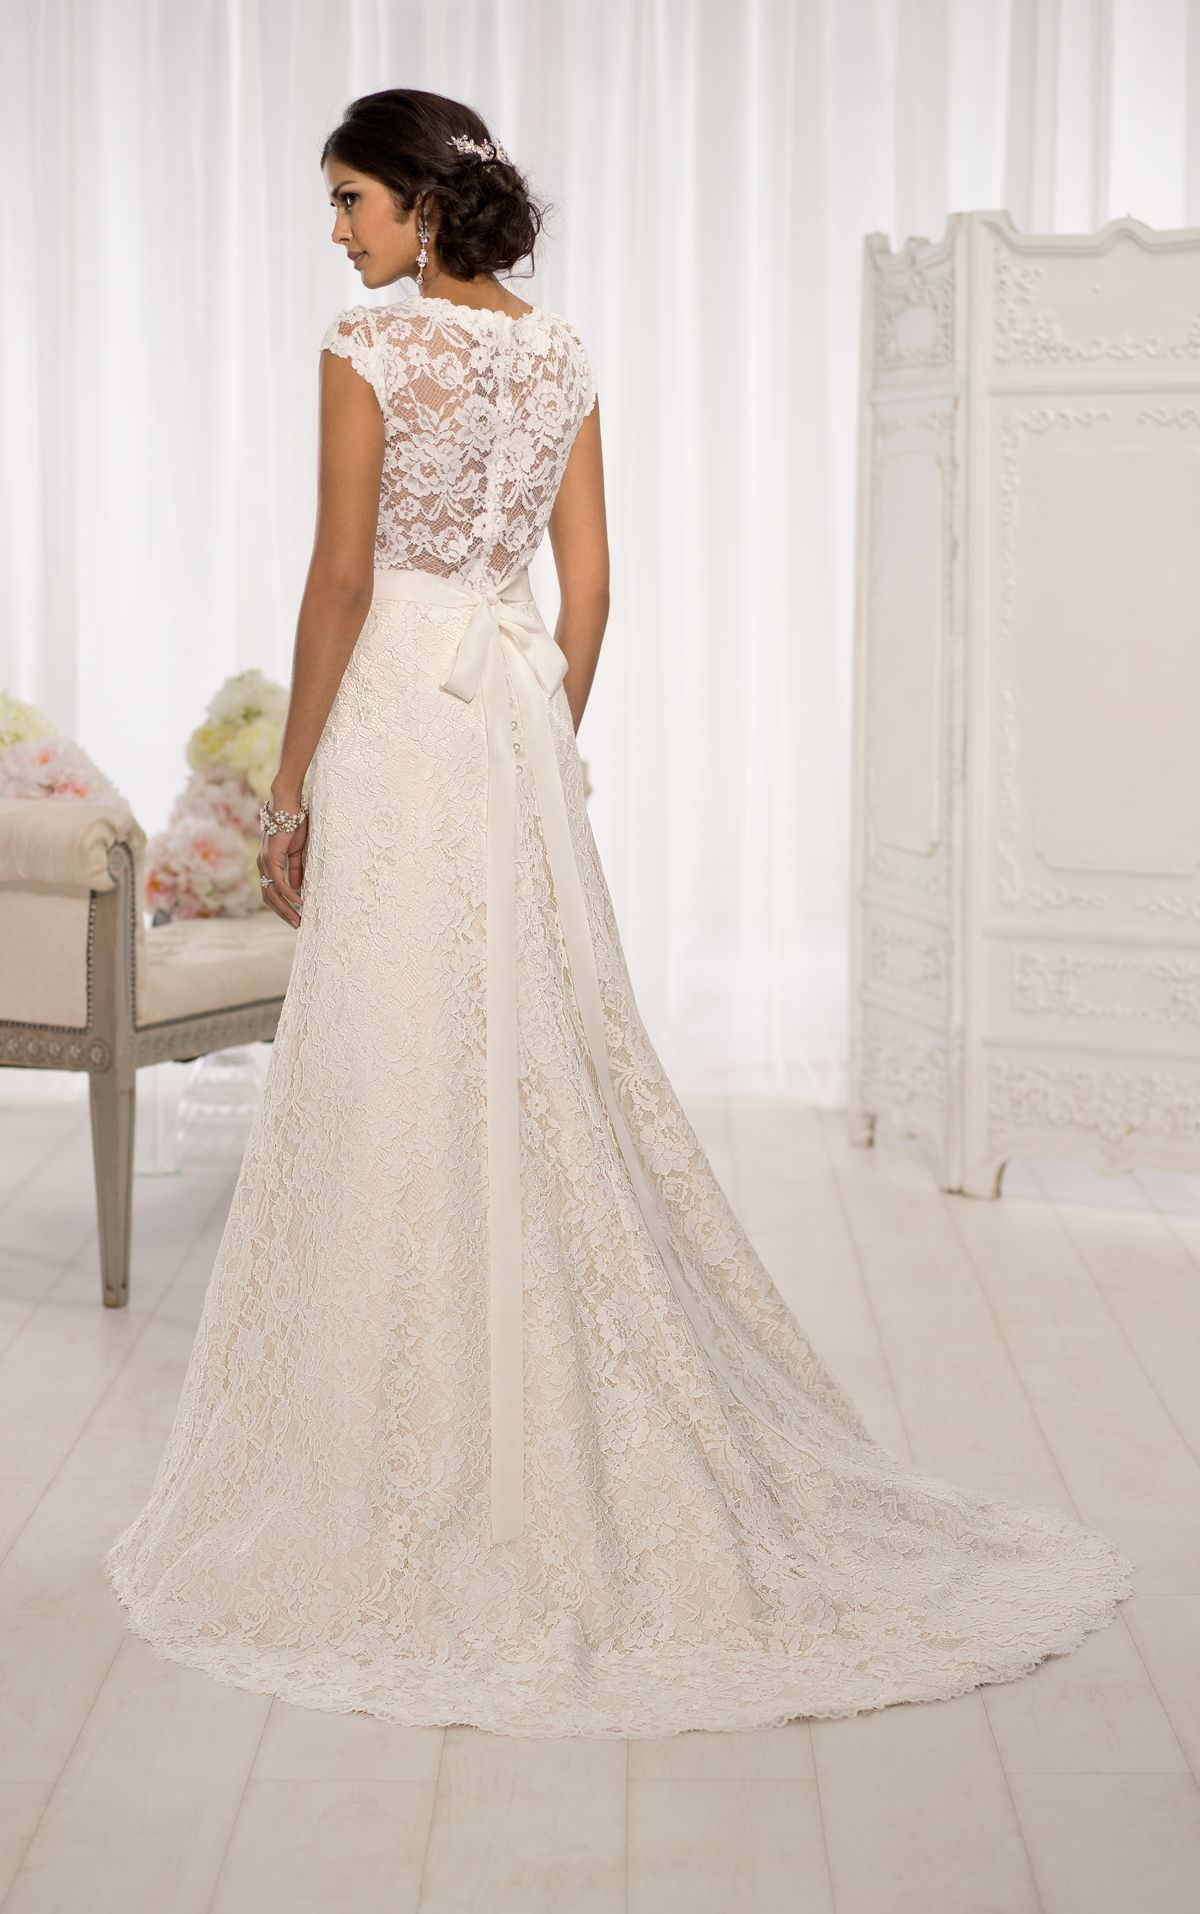 Elegant Cap Sleeve Wedding Dresses Feature A Gorgeous Lace Over Dolce Satin Line Silhouette Exclusive Designer By Essense Of